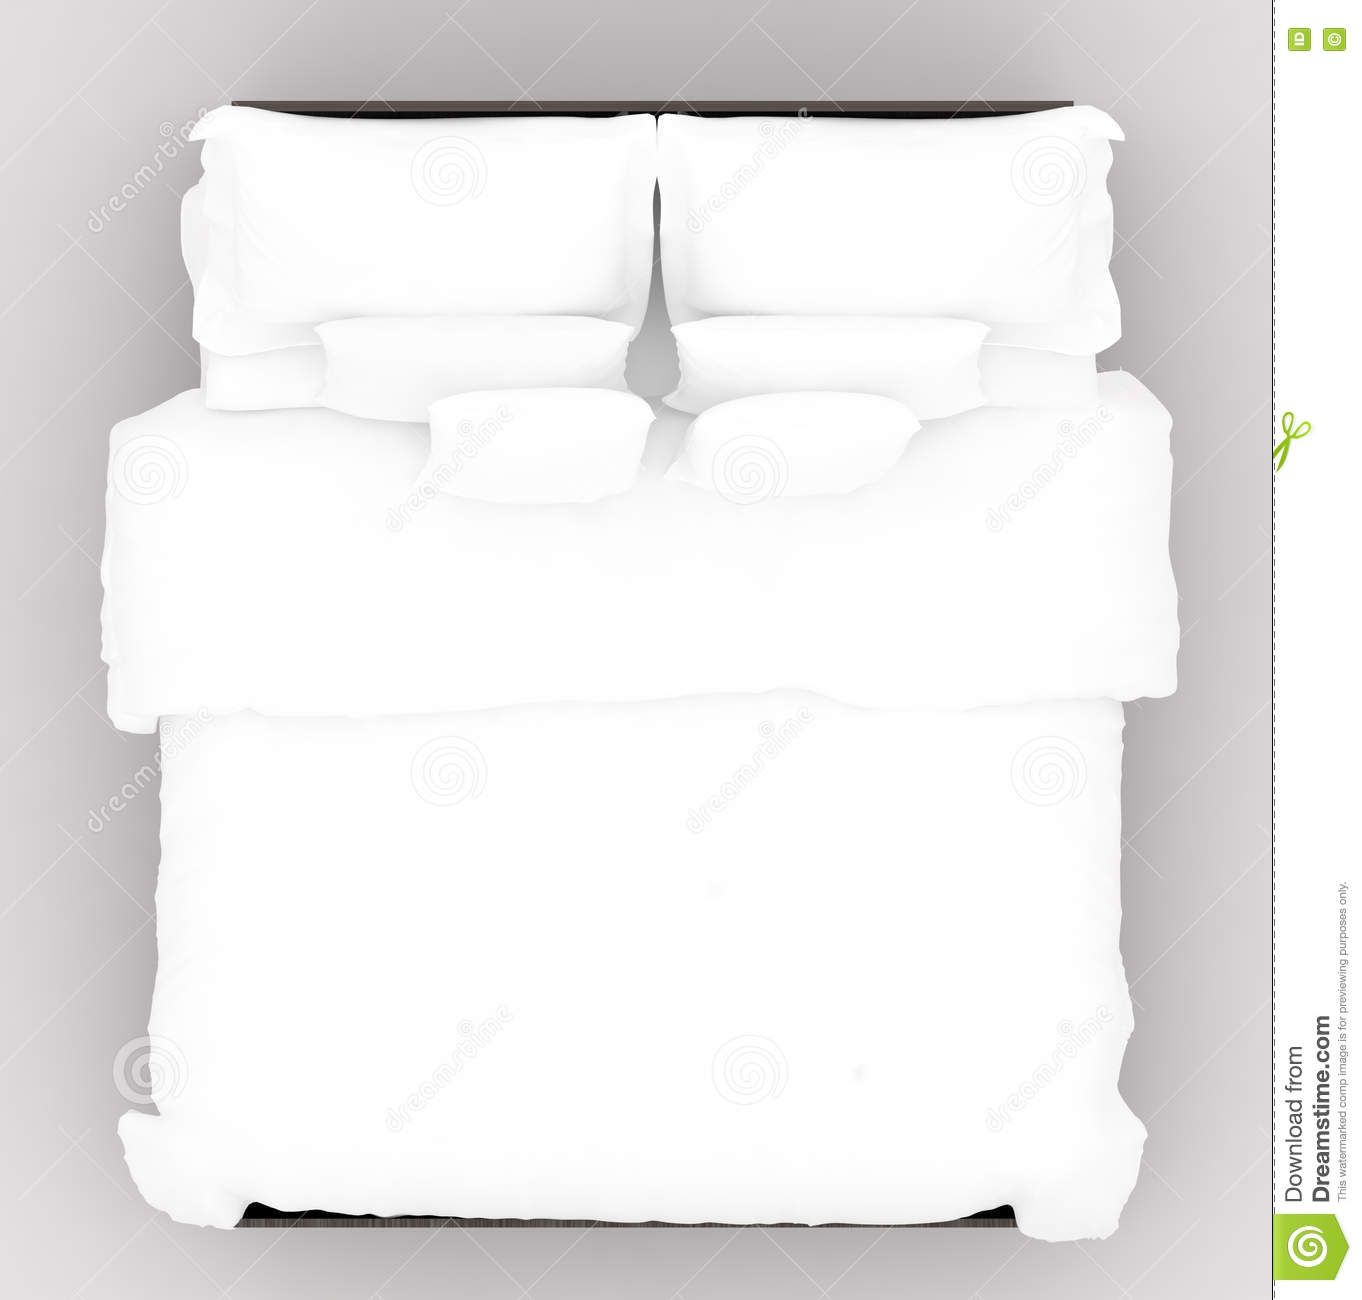 Bed With A Soft Mattress Top View Stock Illustration Image Soft Mattress Bed Top View Bed